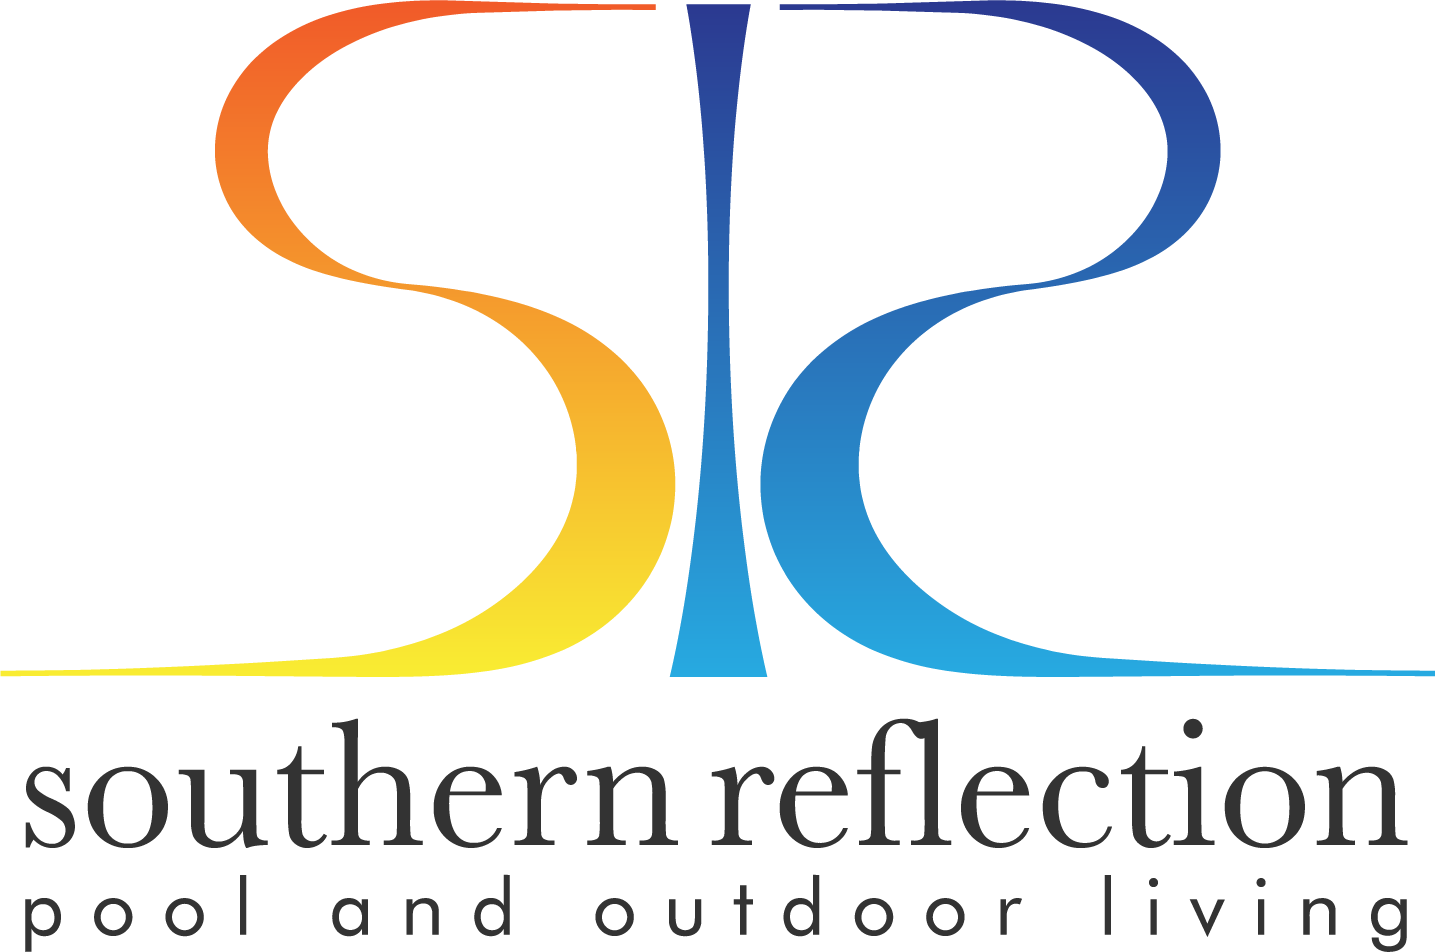 southern-reflection-pools-footer-logo-east-bend-winston-salem-greensboro-kernersville-north-carolina